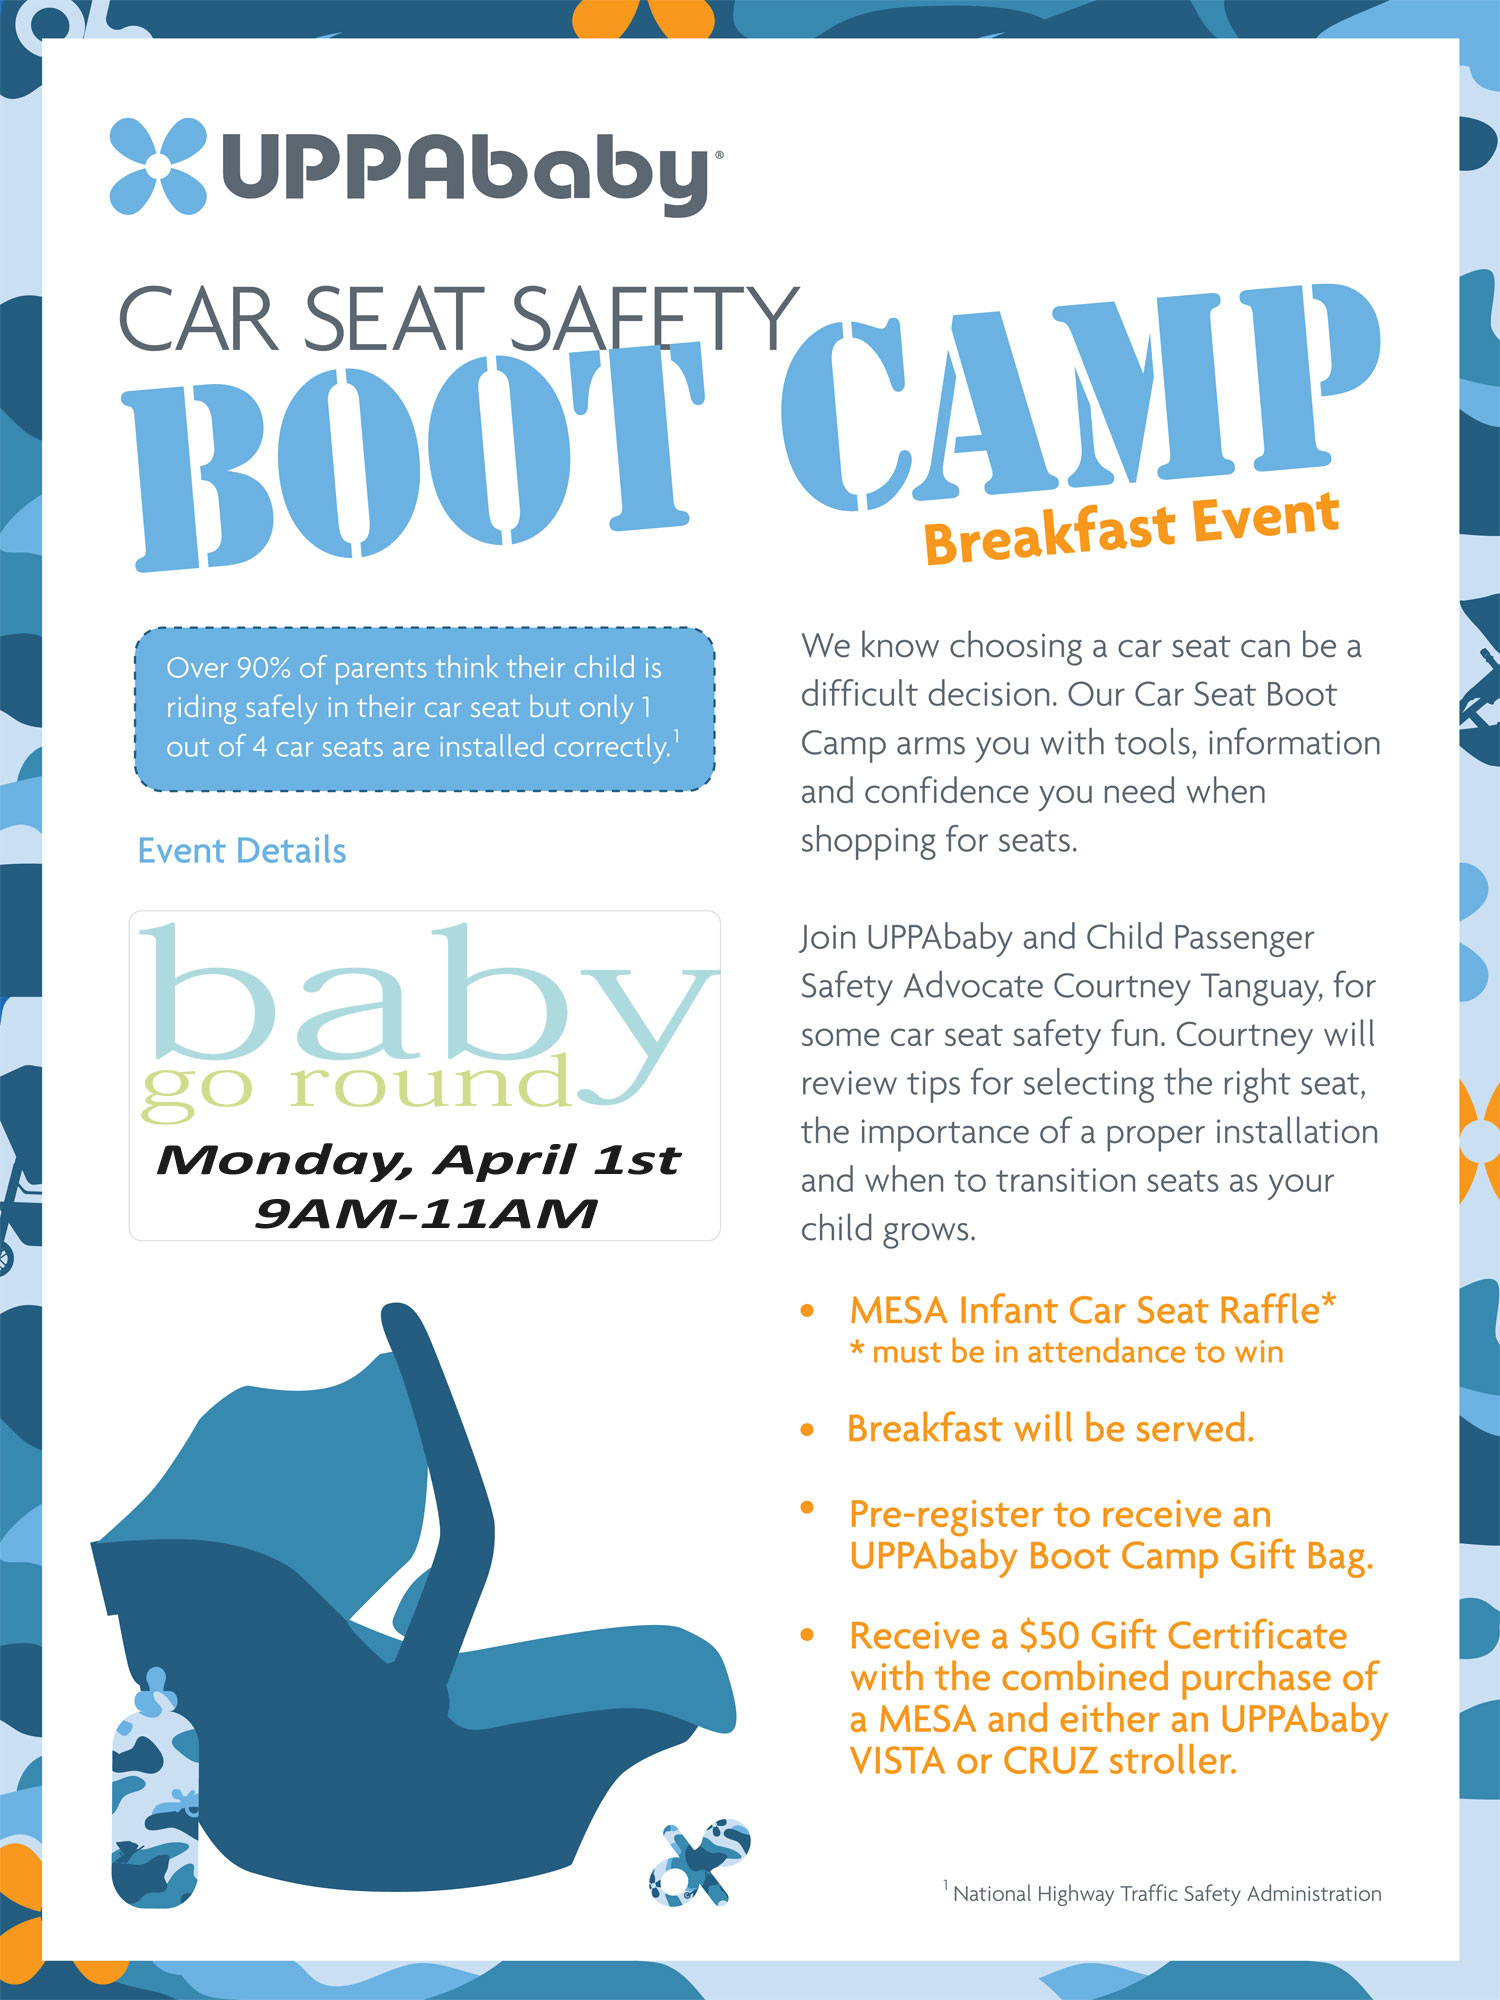 UPPAbaby Car Seat Bootcamp at Baby Go Round Monday April 1st!  Meet the Mesa and a Car Seat Safety Expert, win a Mesa, free gift bag to those who pre-register.  Breakfast will be served.